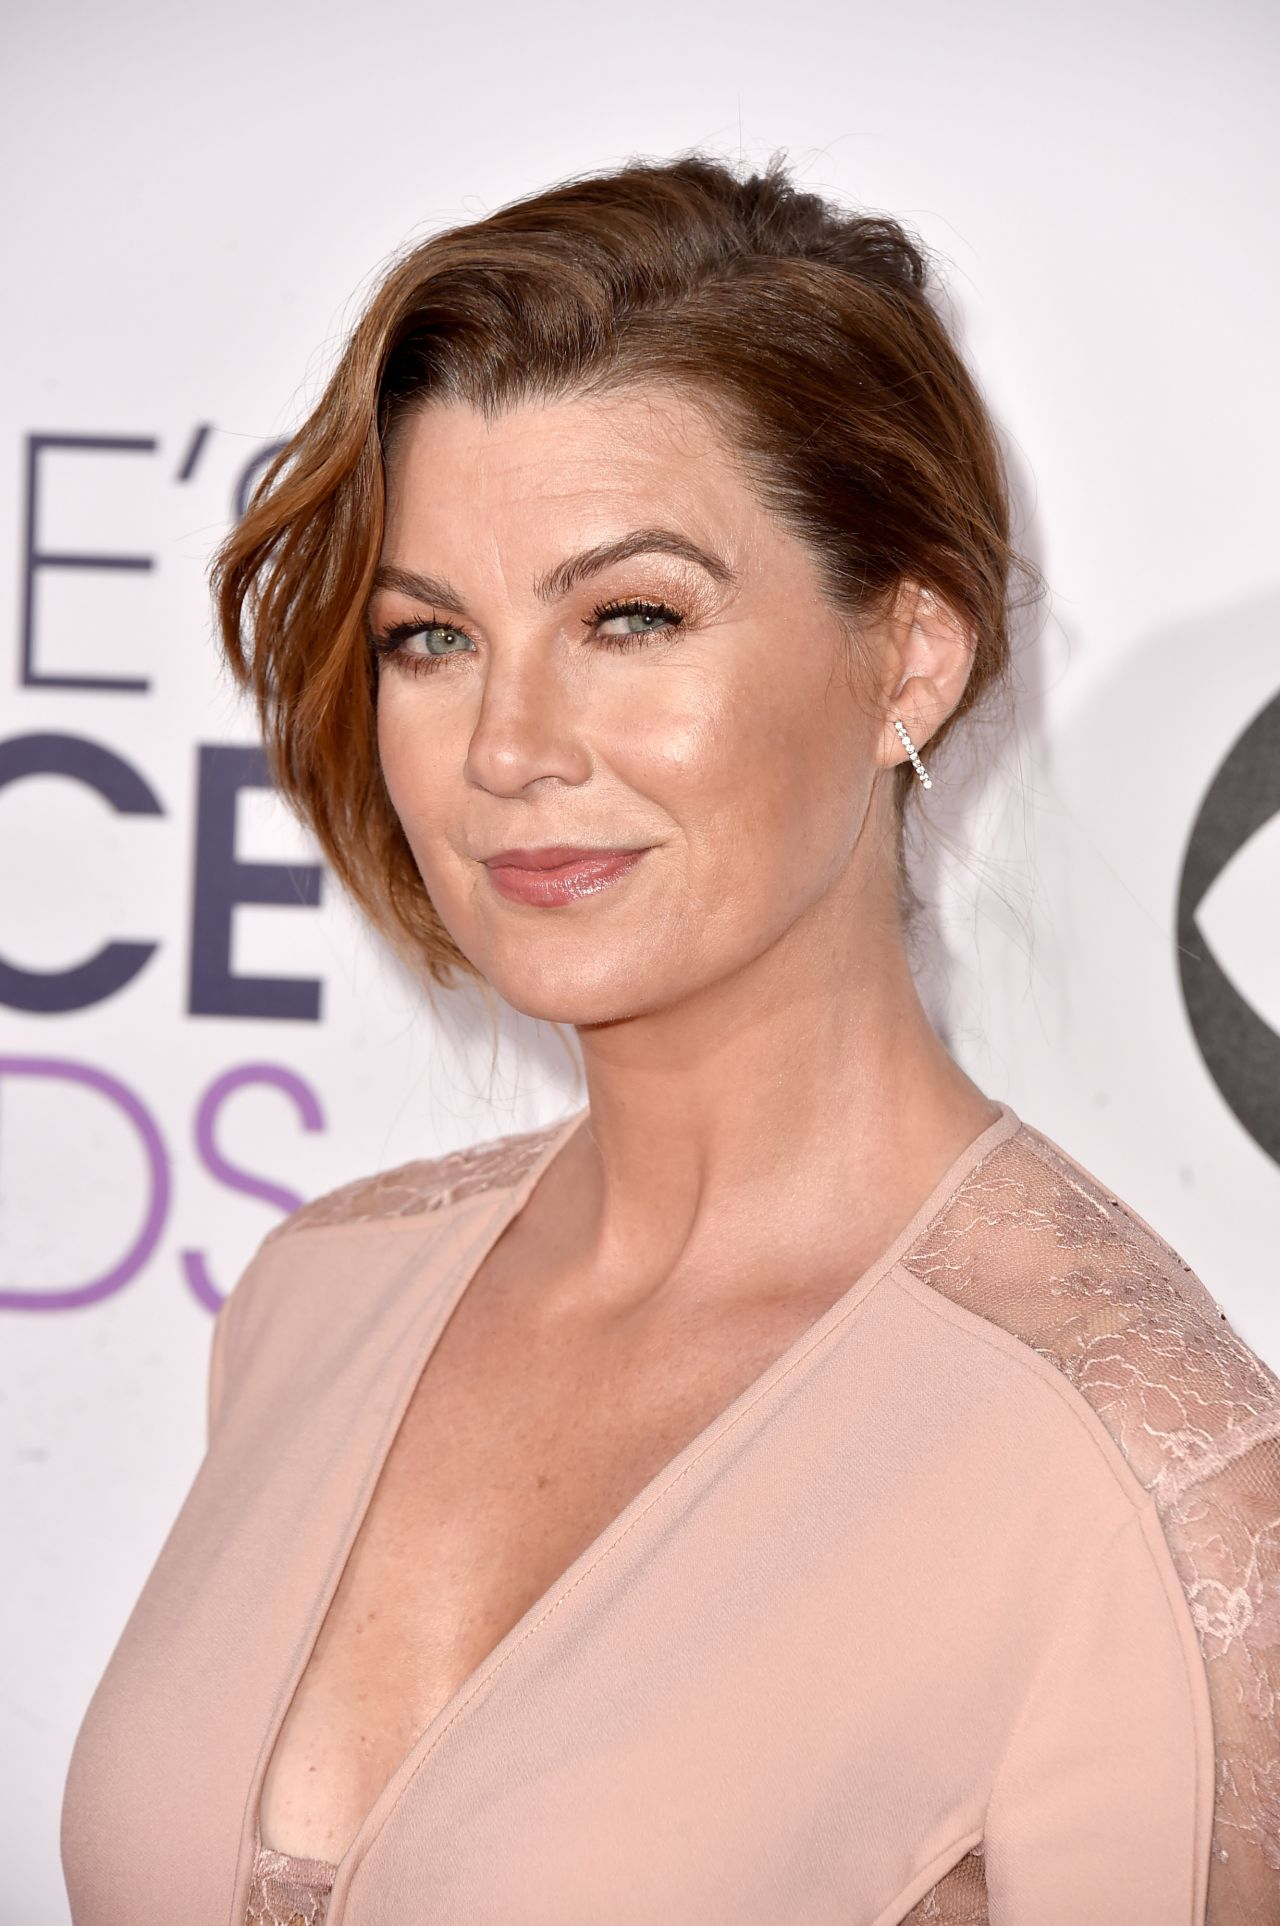 Ellen Pompeo Latest Photos Celebmafia